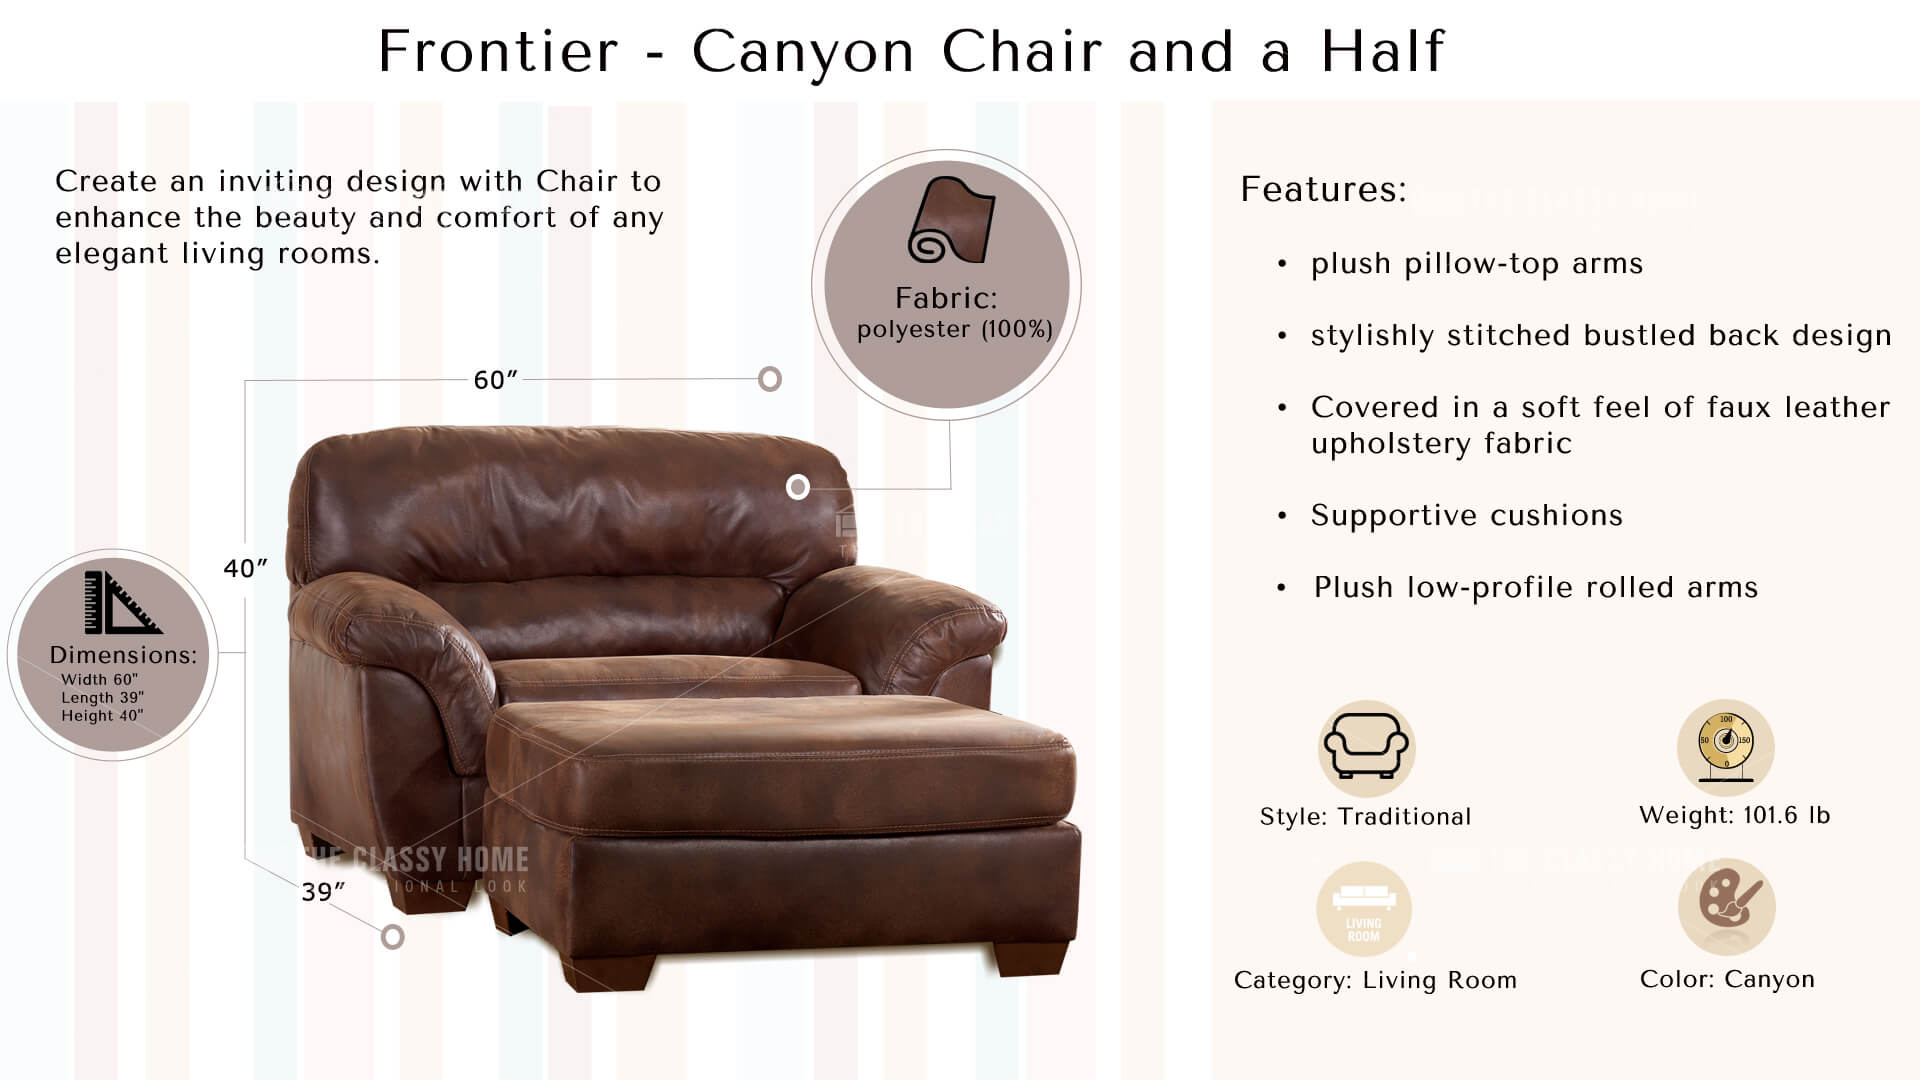 Frontier Casual Canyon Faux Leather Wood Chair And A Half